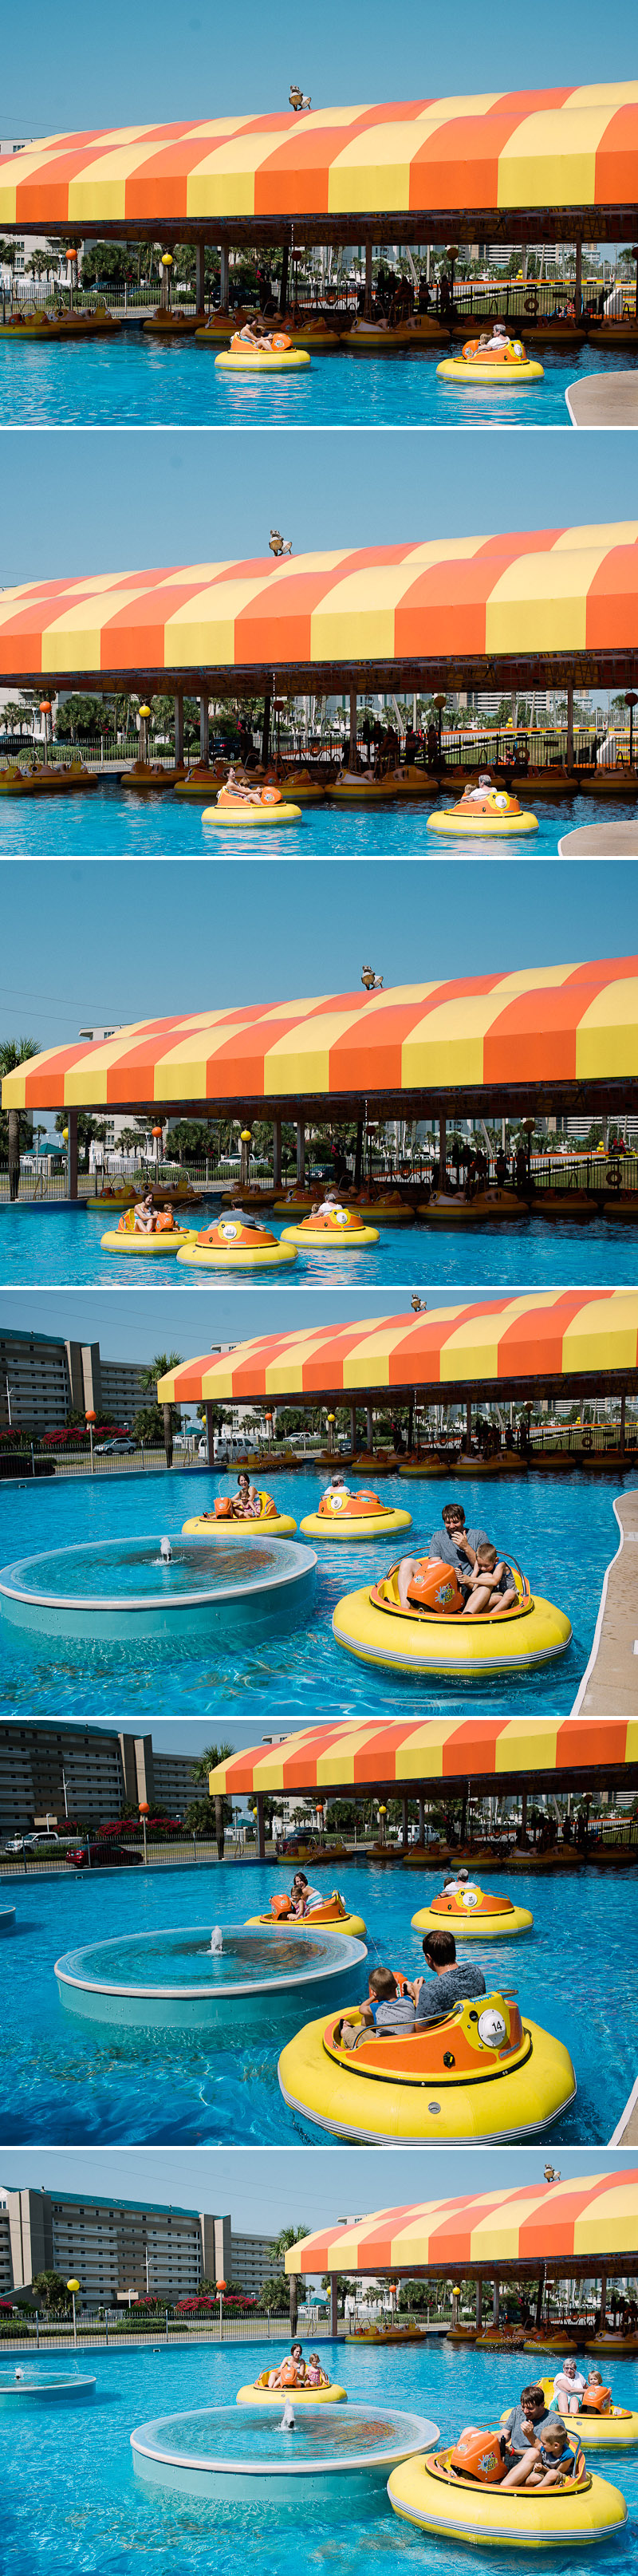 Fun bumper boat pictures.